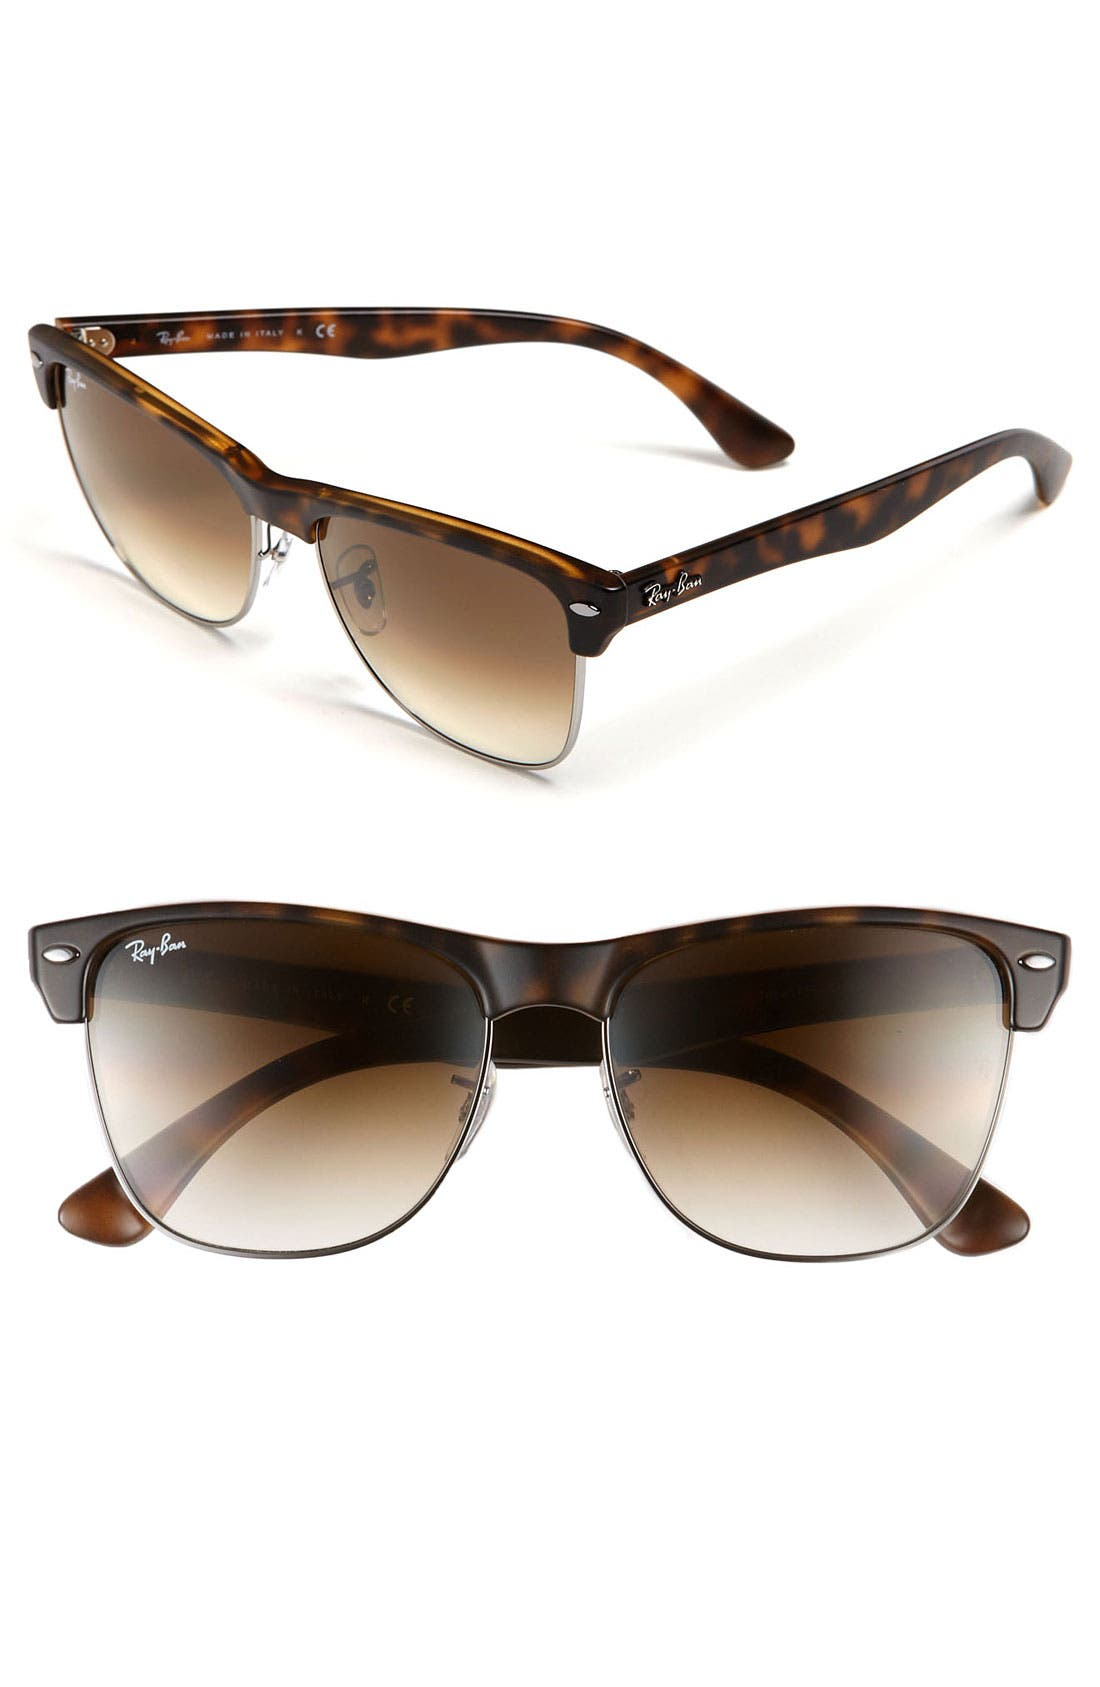 Highstreet 57mm Sunglasses,                             Main thumbnail 1, color,                             Demi Havana/ Brown Gradient